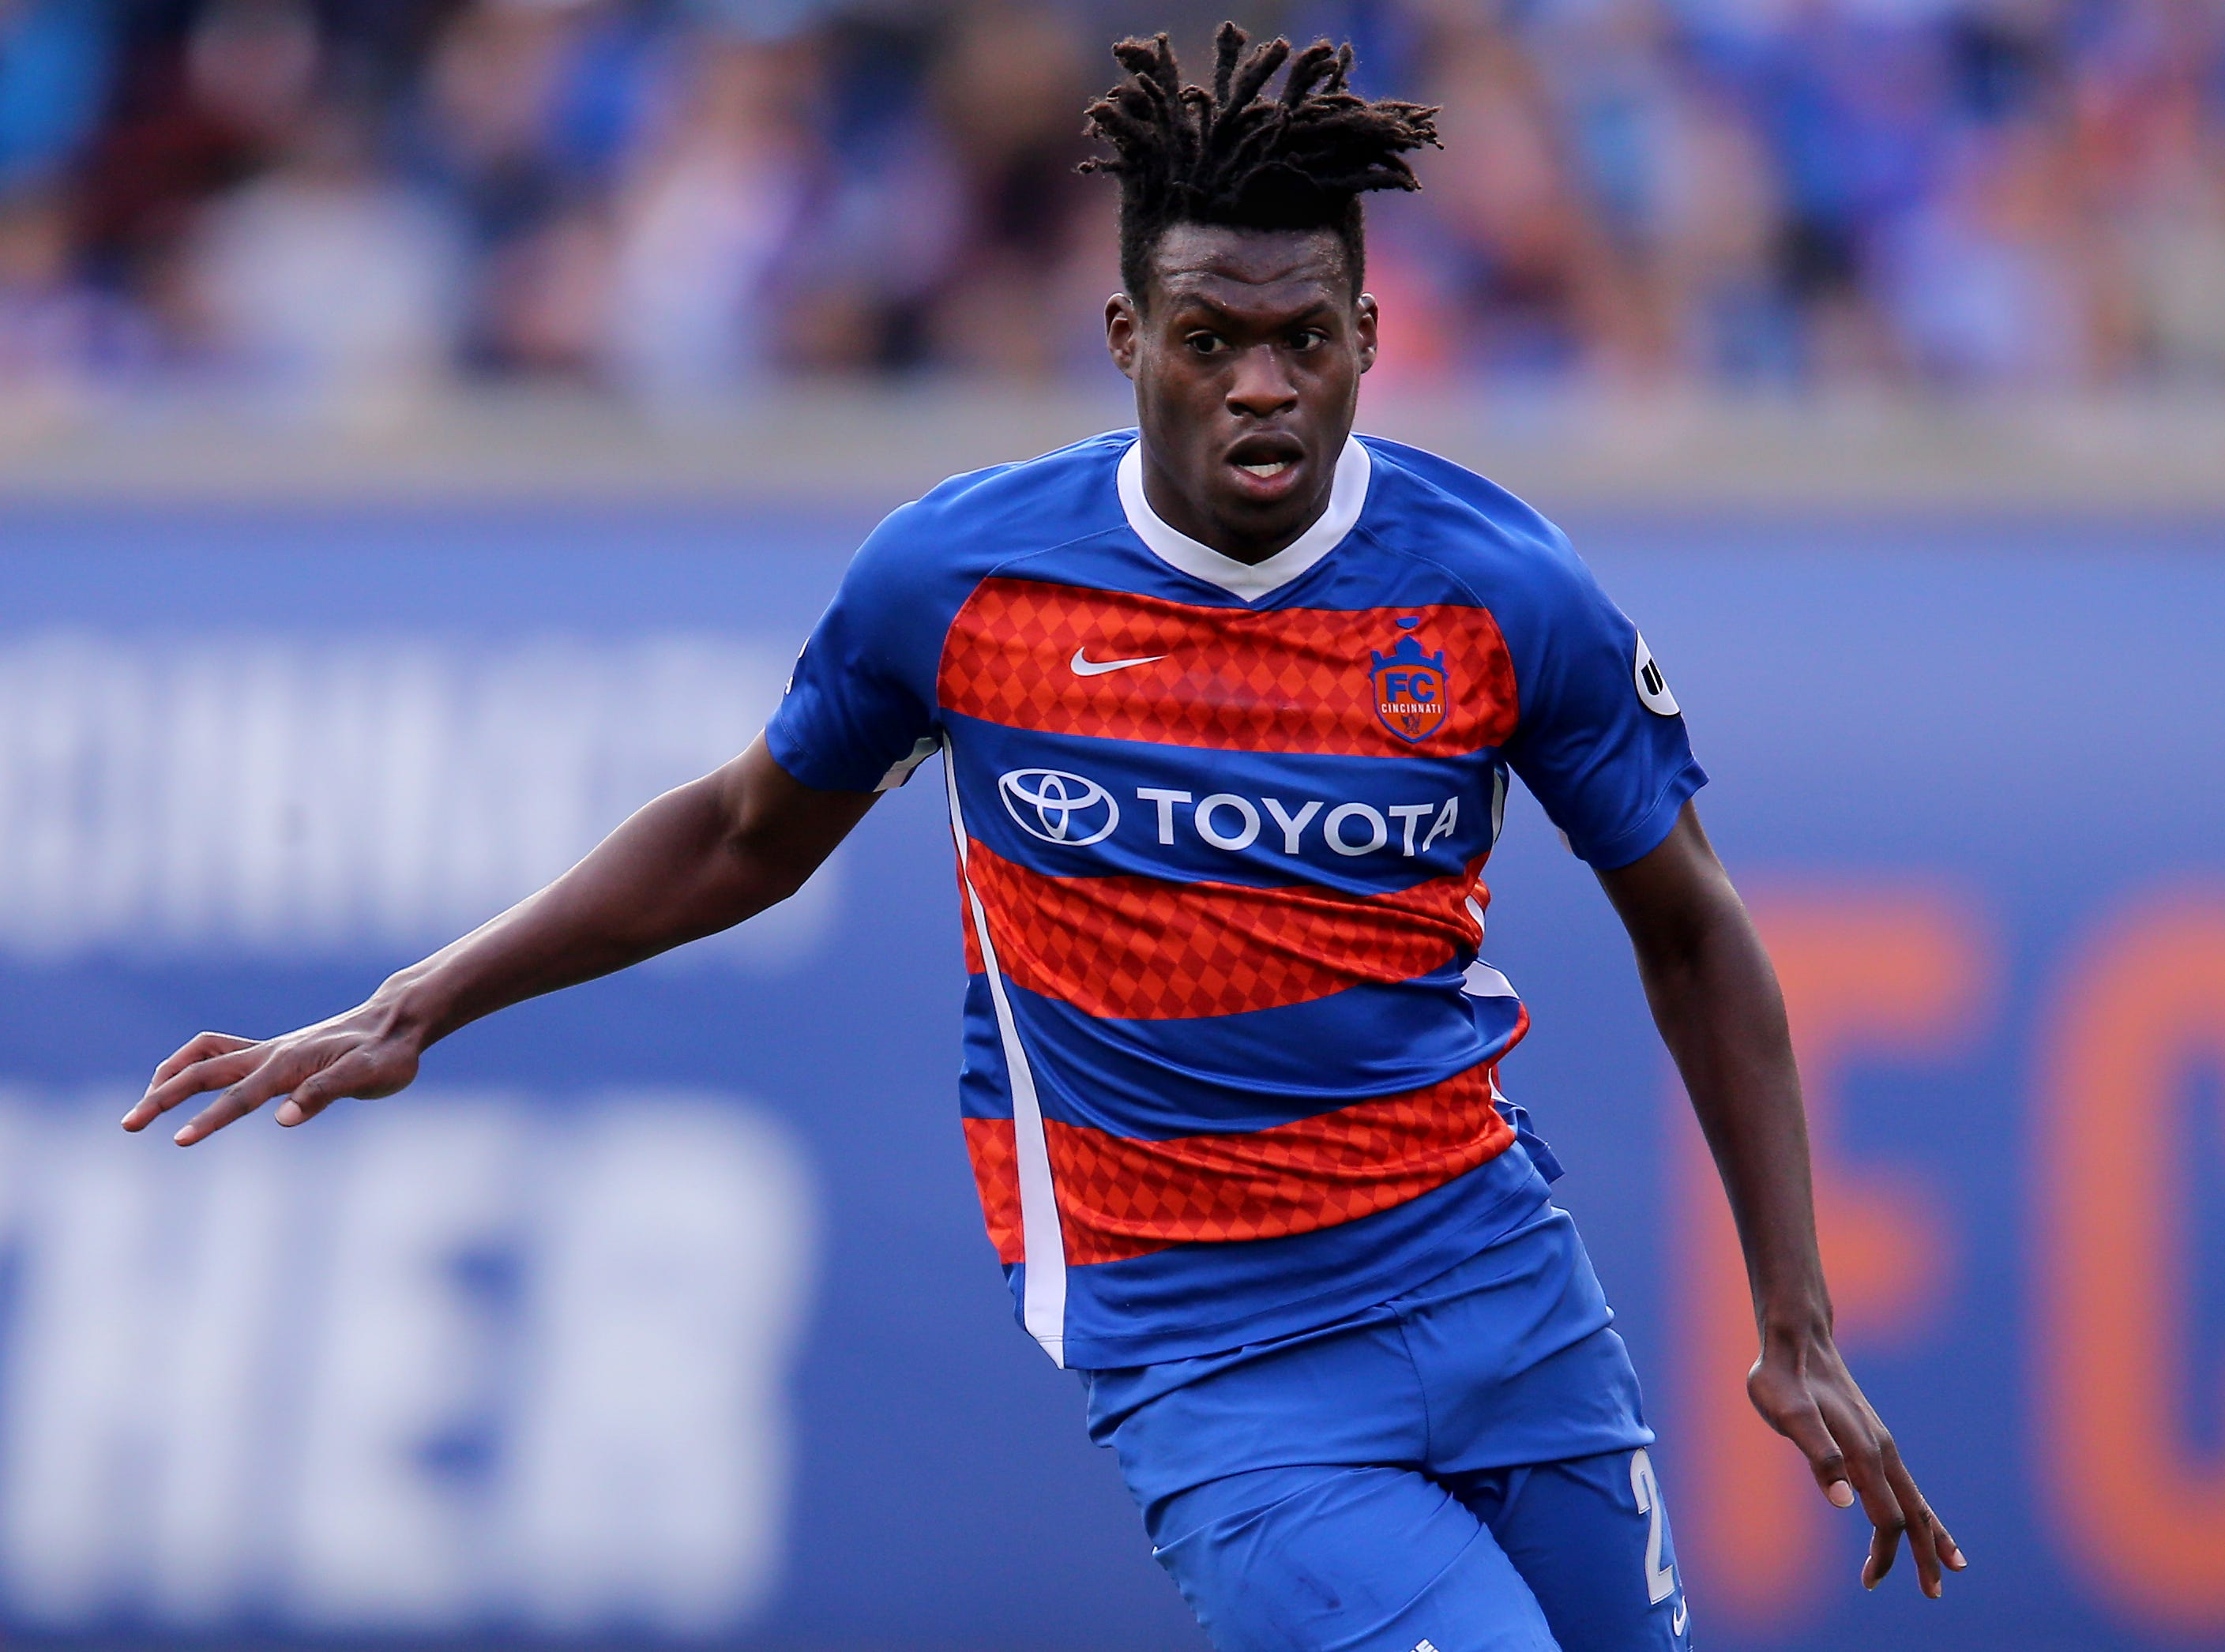 FC Cincinnati midfielder Fatai Alashe (27) dribbles the ball forward in the first half during a USL soccer playoff game between Nashville SC and FC Cincinnati,Saturday, Oct. 20, 2018, at Nippert Stadium in Cincinnati.